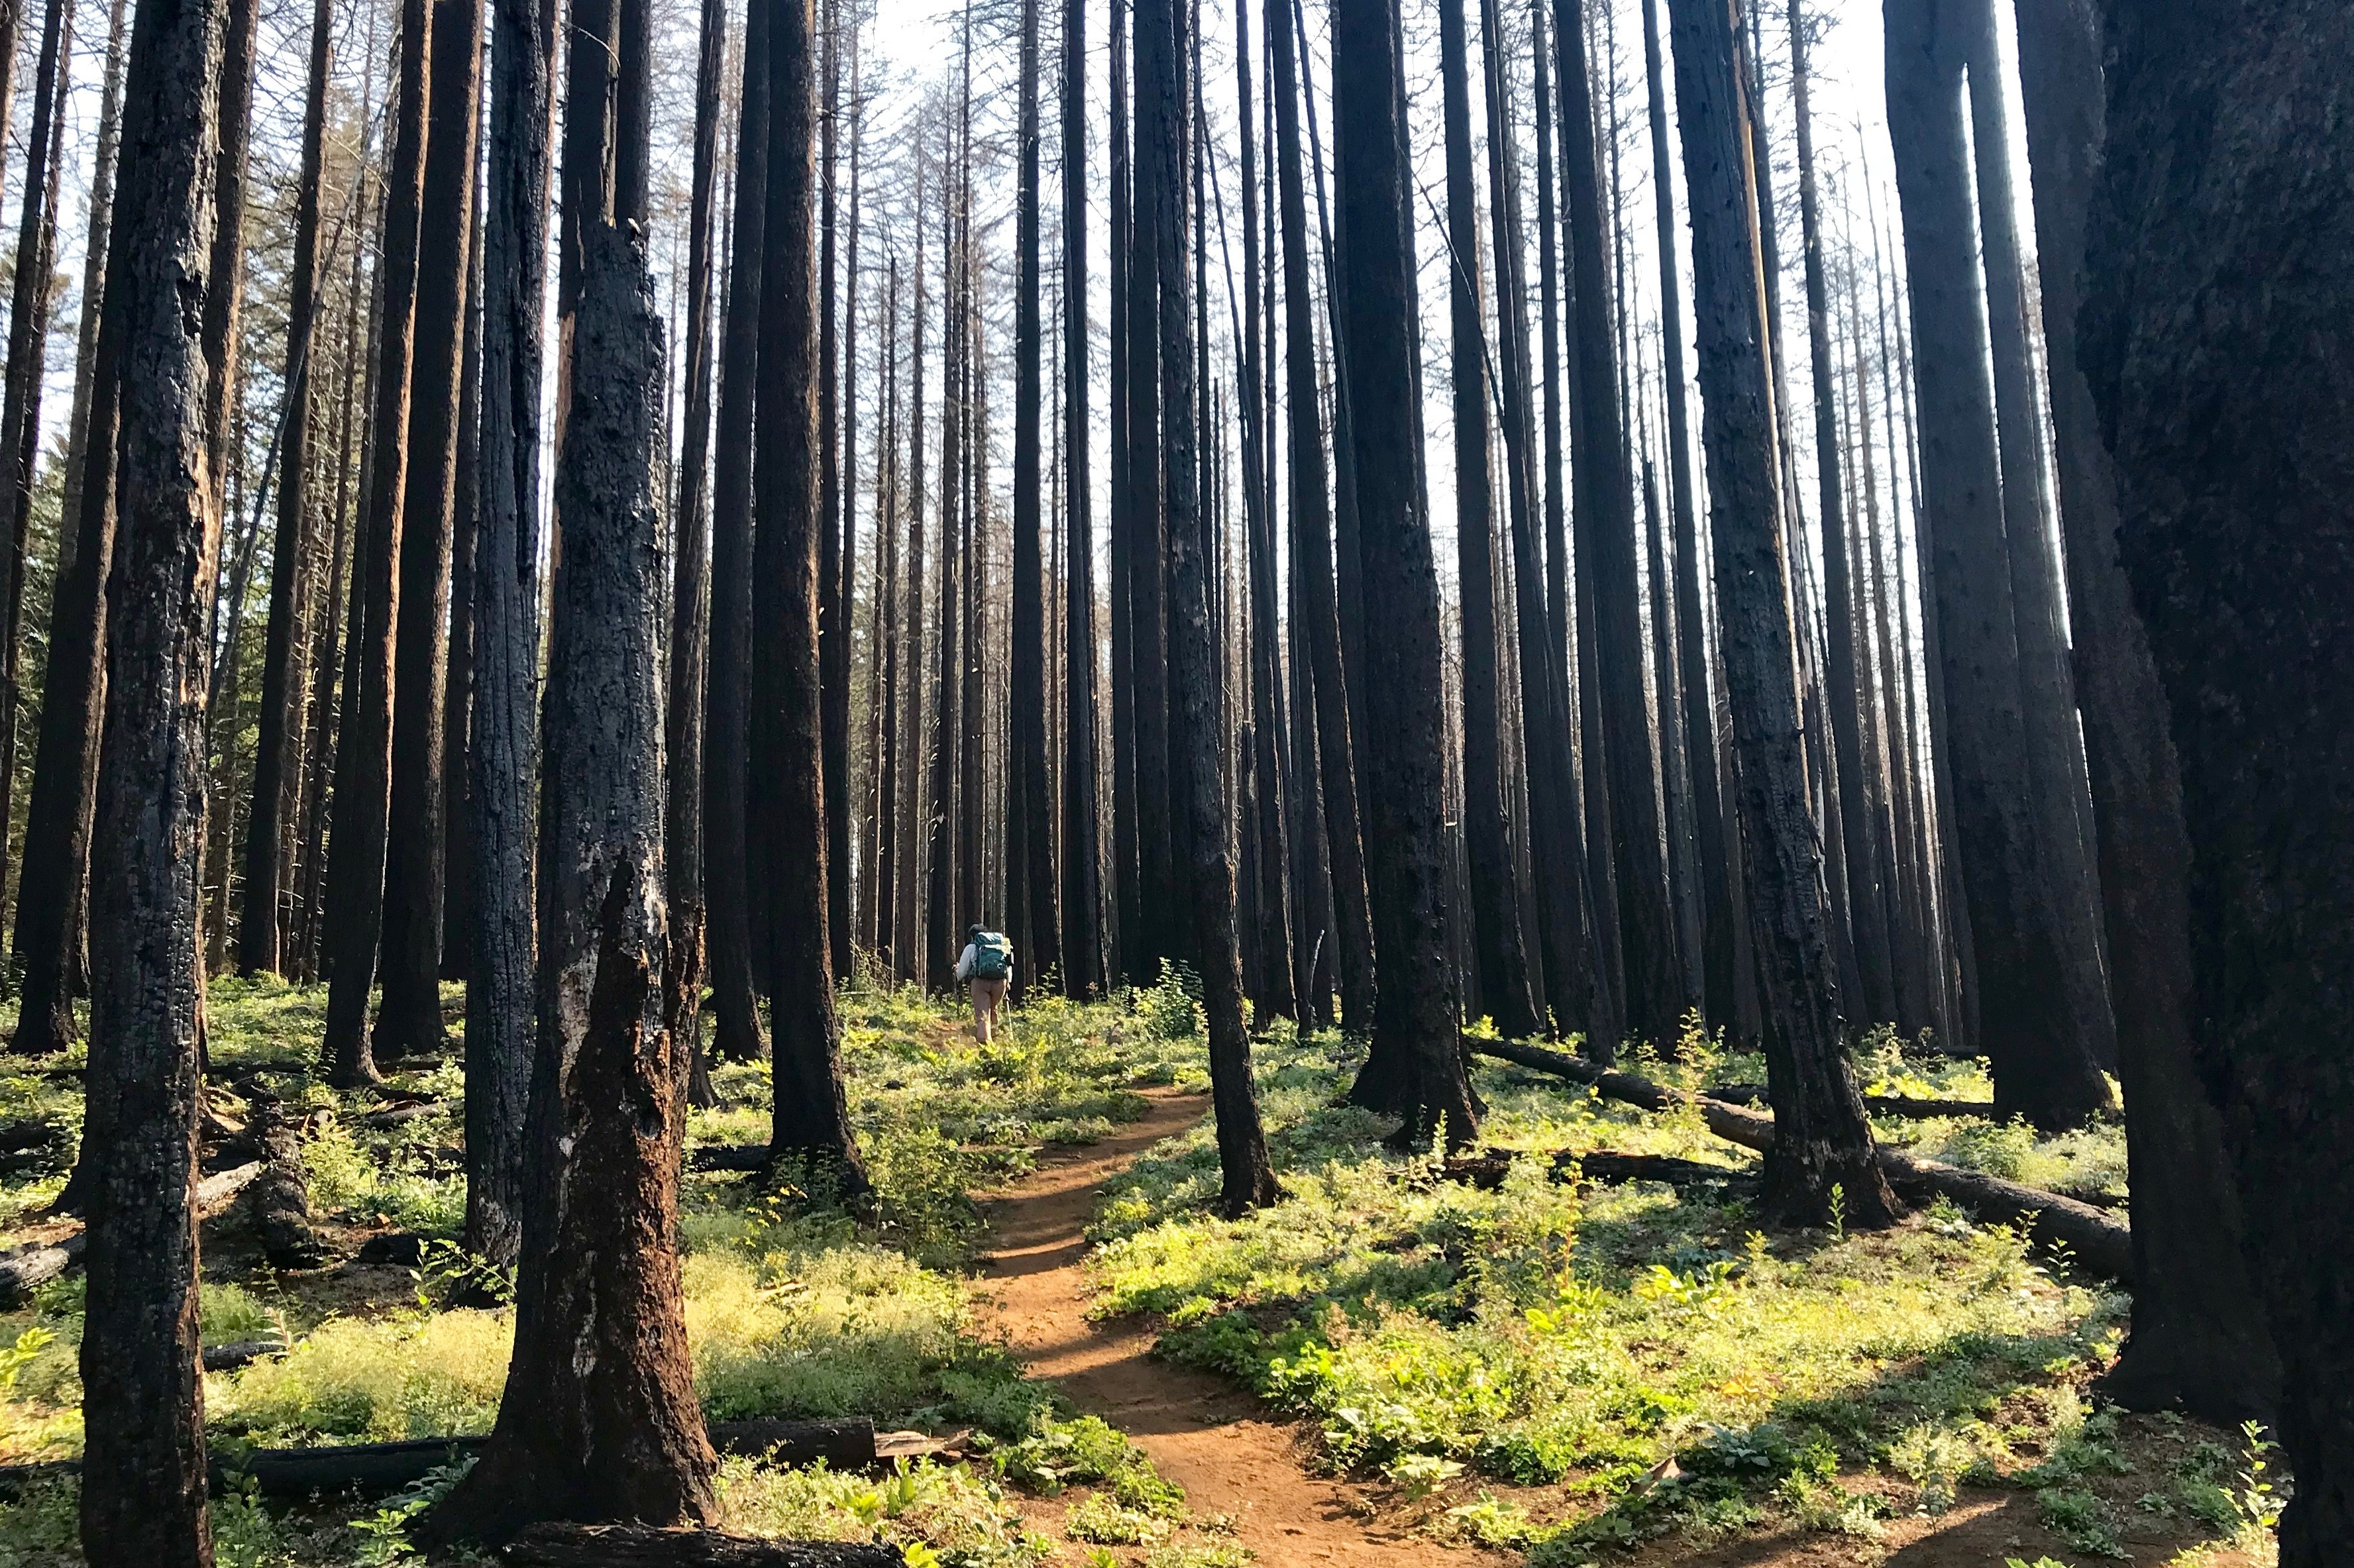 Forest Disturbances and Fire Ecology, OR